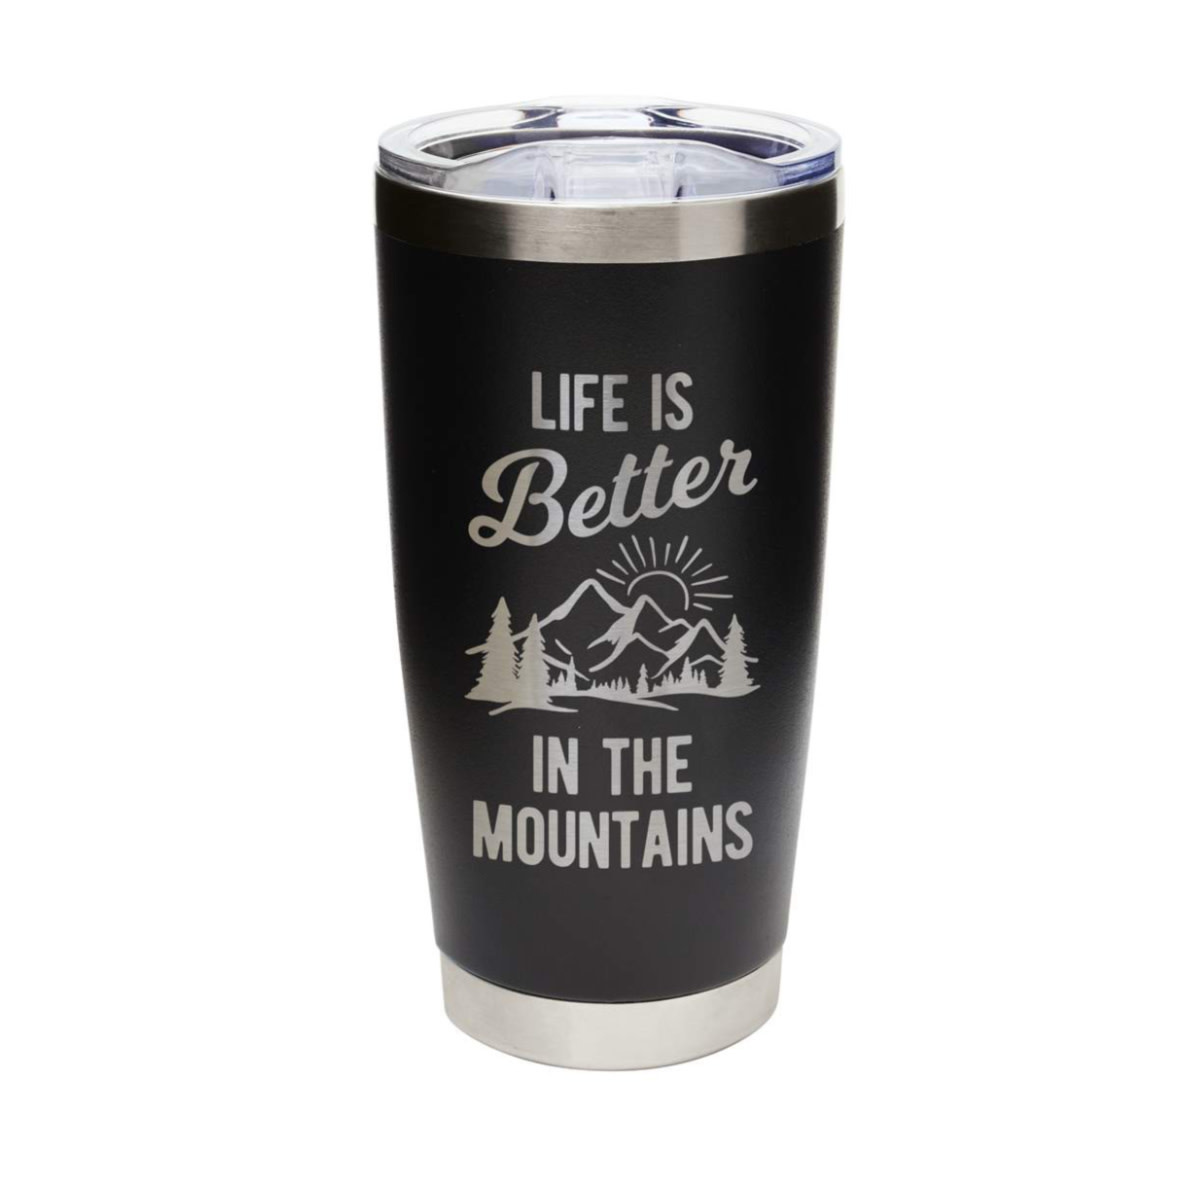 Mary Square Life is Better...Mountains Tumbler Black